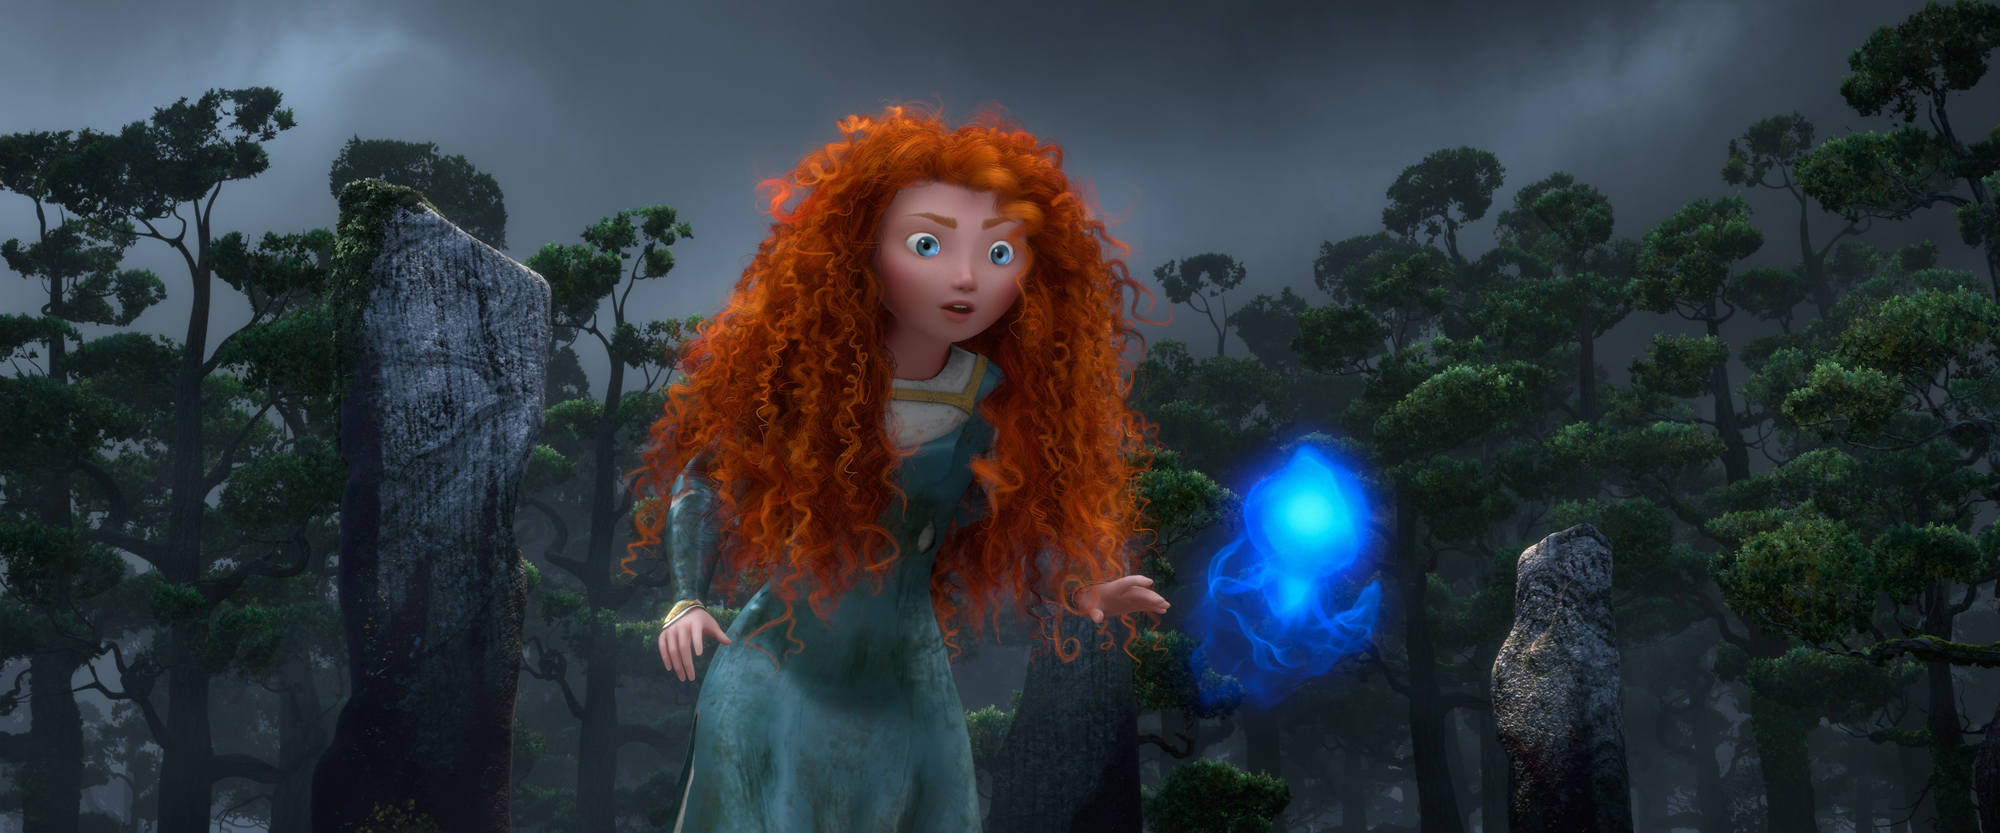 brave new hr 2 Disney/Pixar News: New Images from Pixars Brave; Tangled Short to Play Before Beauty and the Beast 3D